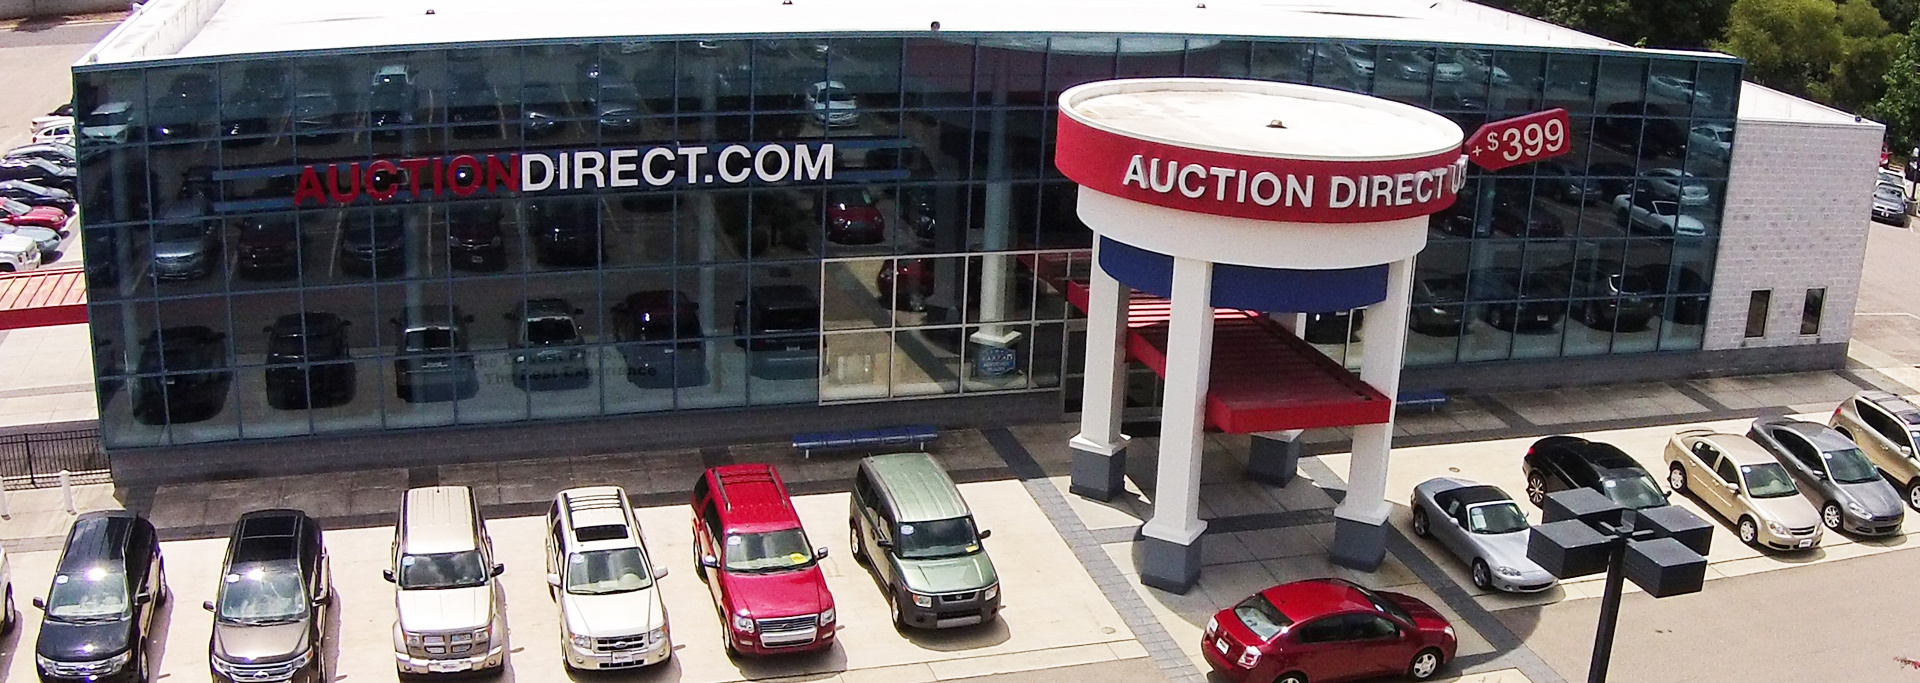 Nc Car Inspection Near Me >> Auction Direct USA Raleigh, NC 27612 - YP.com